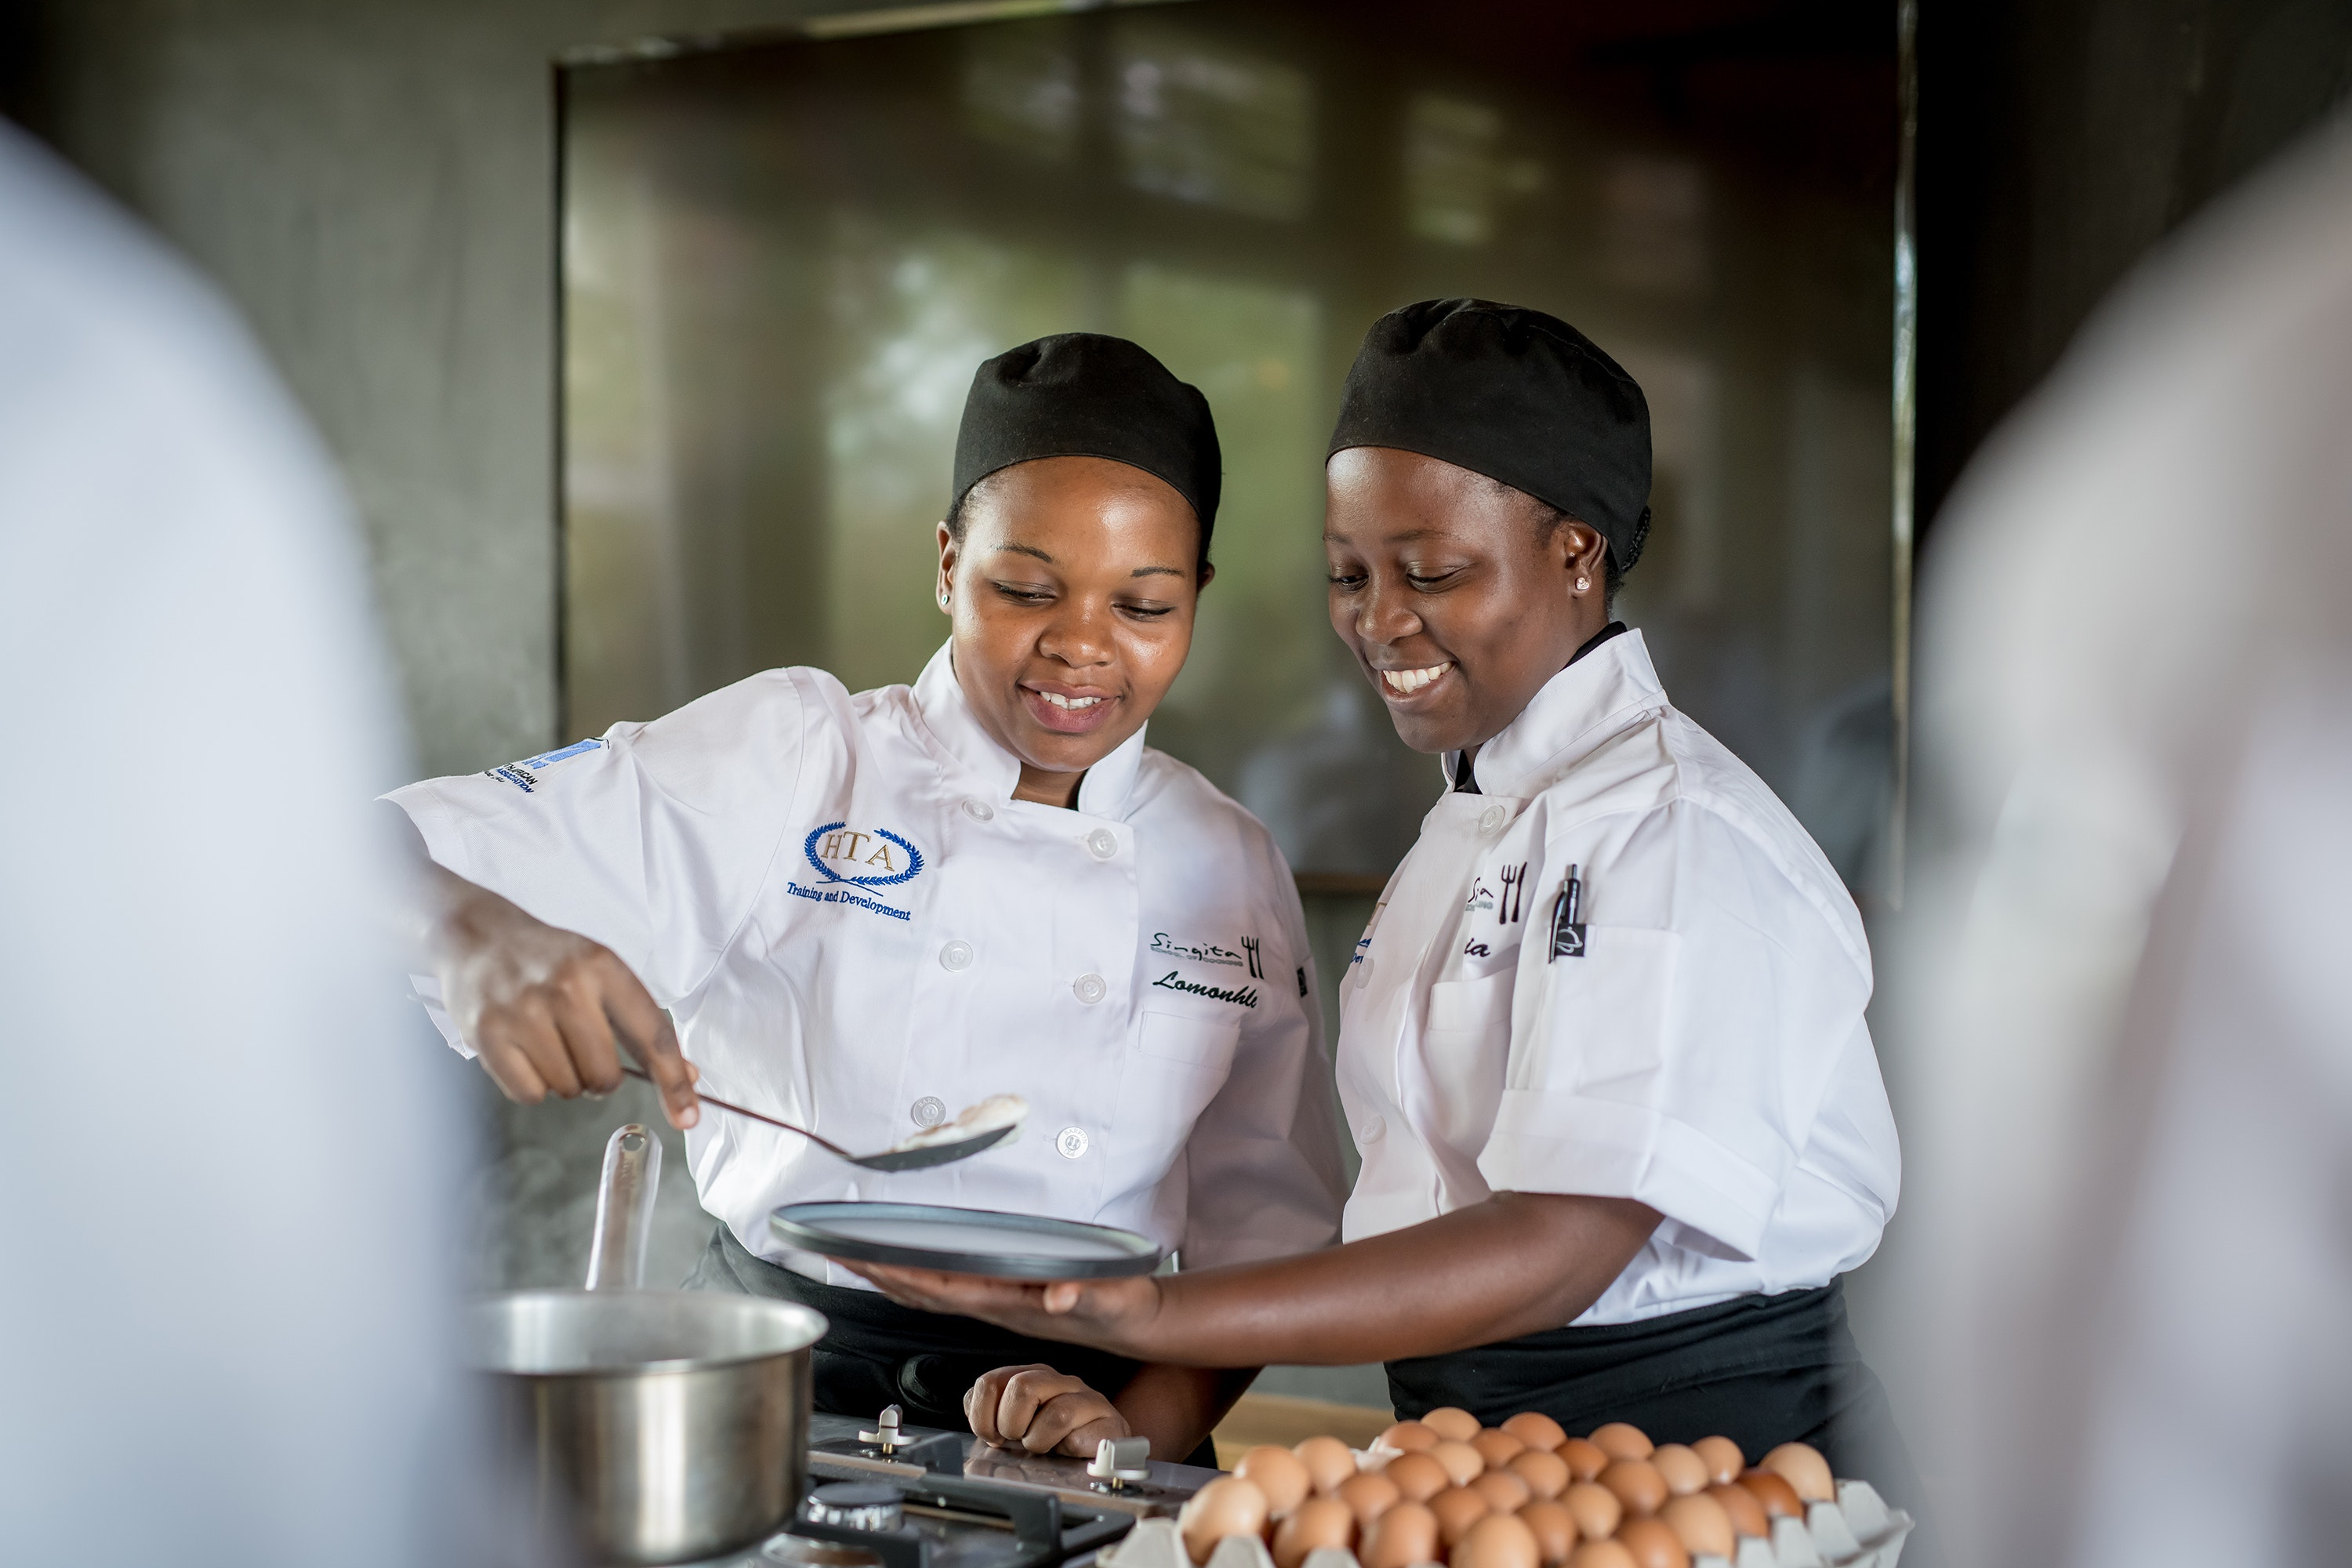 Singita operates two cooking schools, one in Tanzania and one in South Africa.